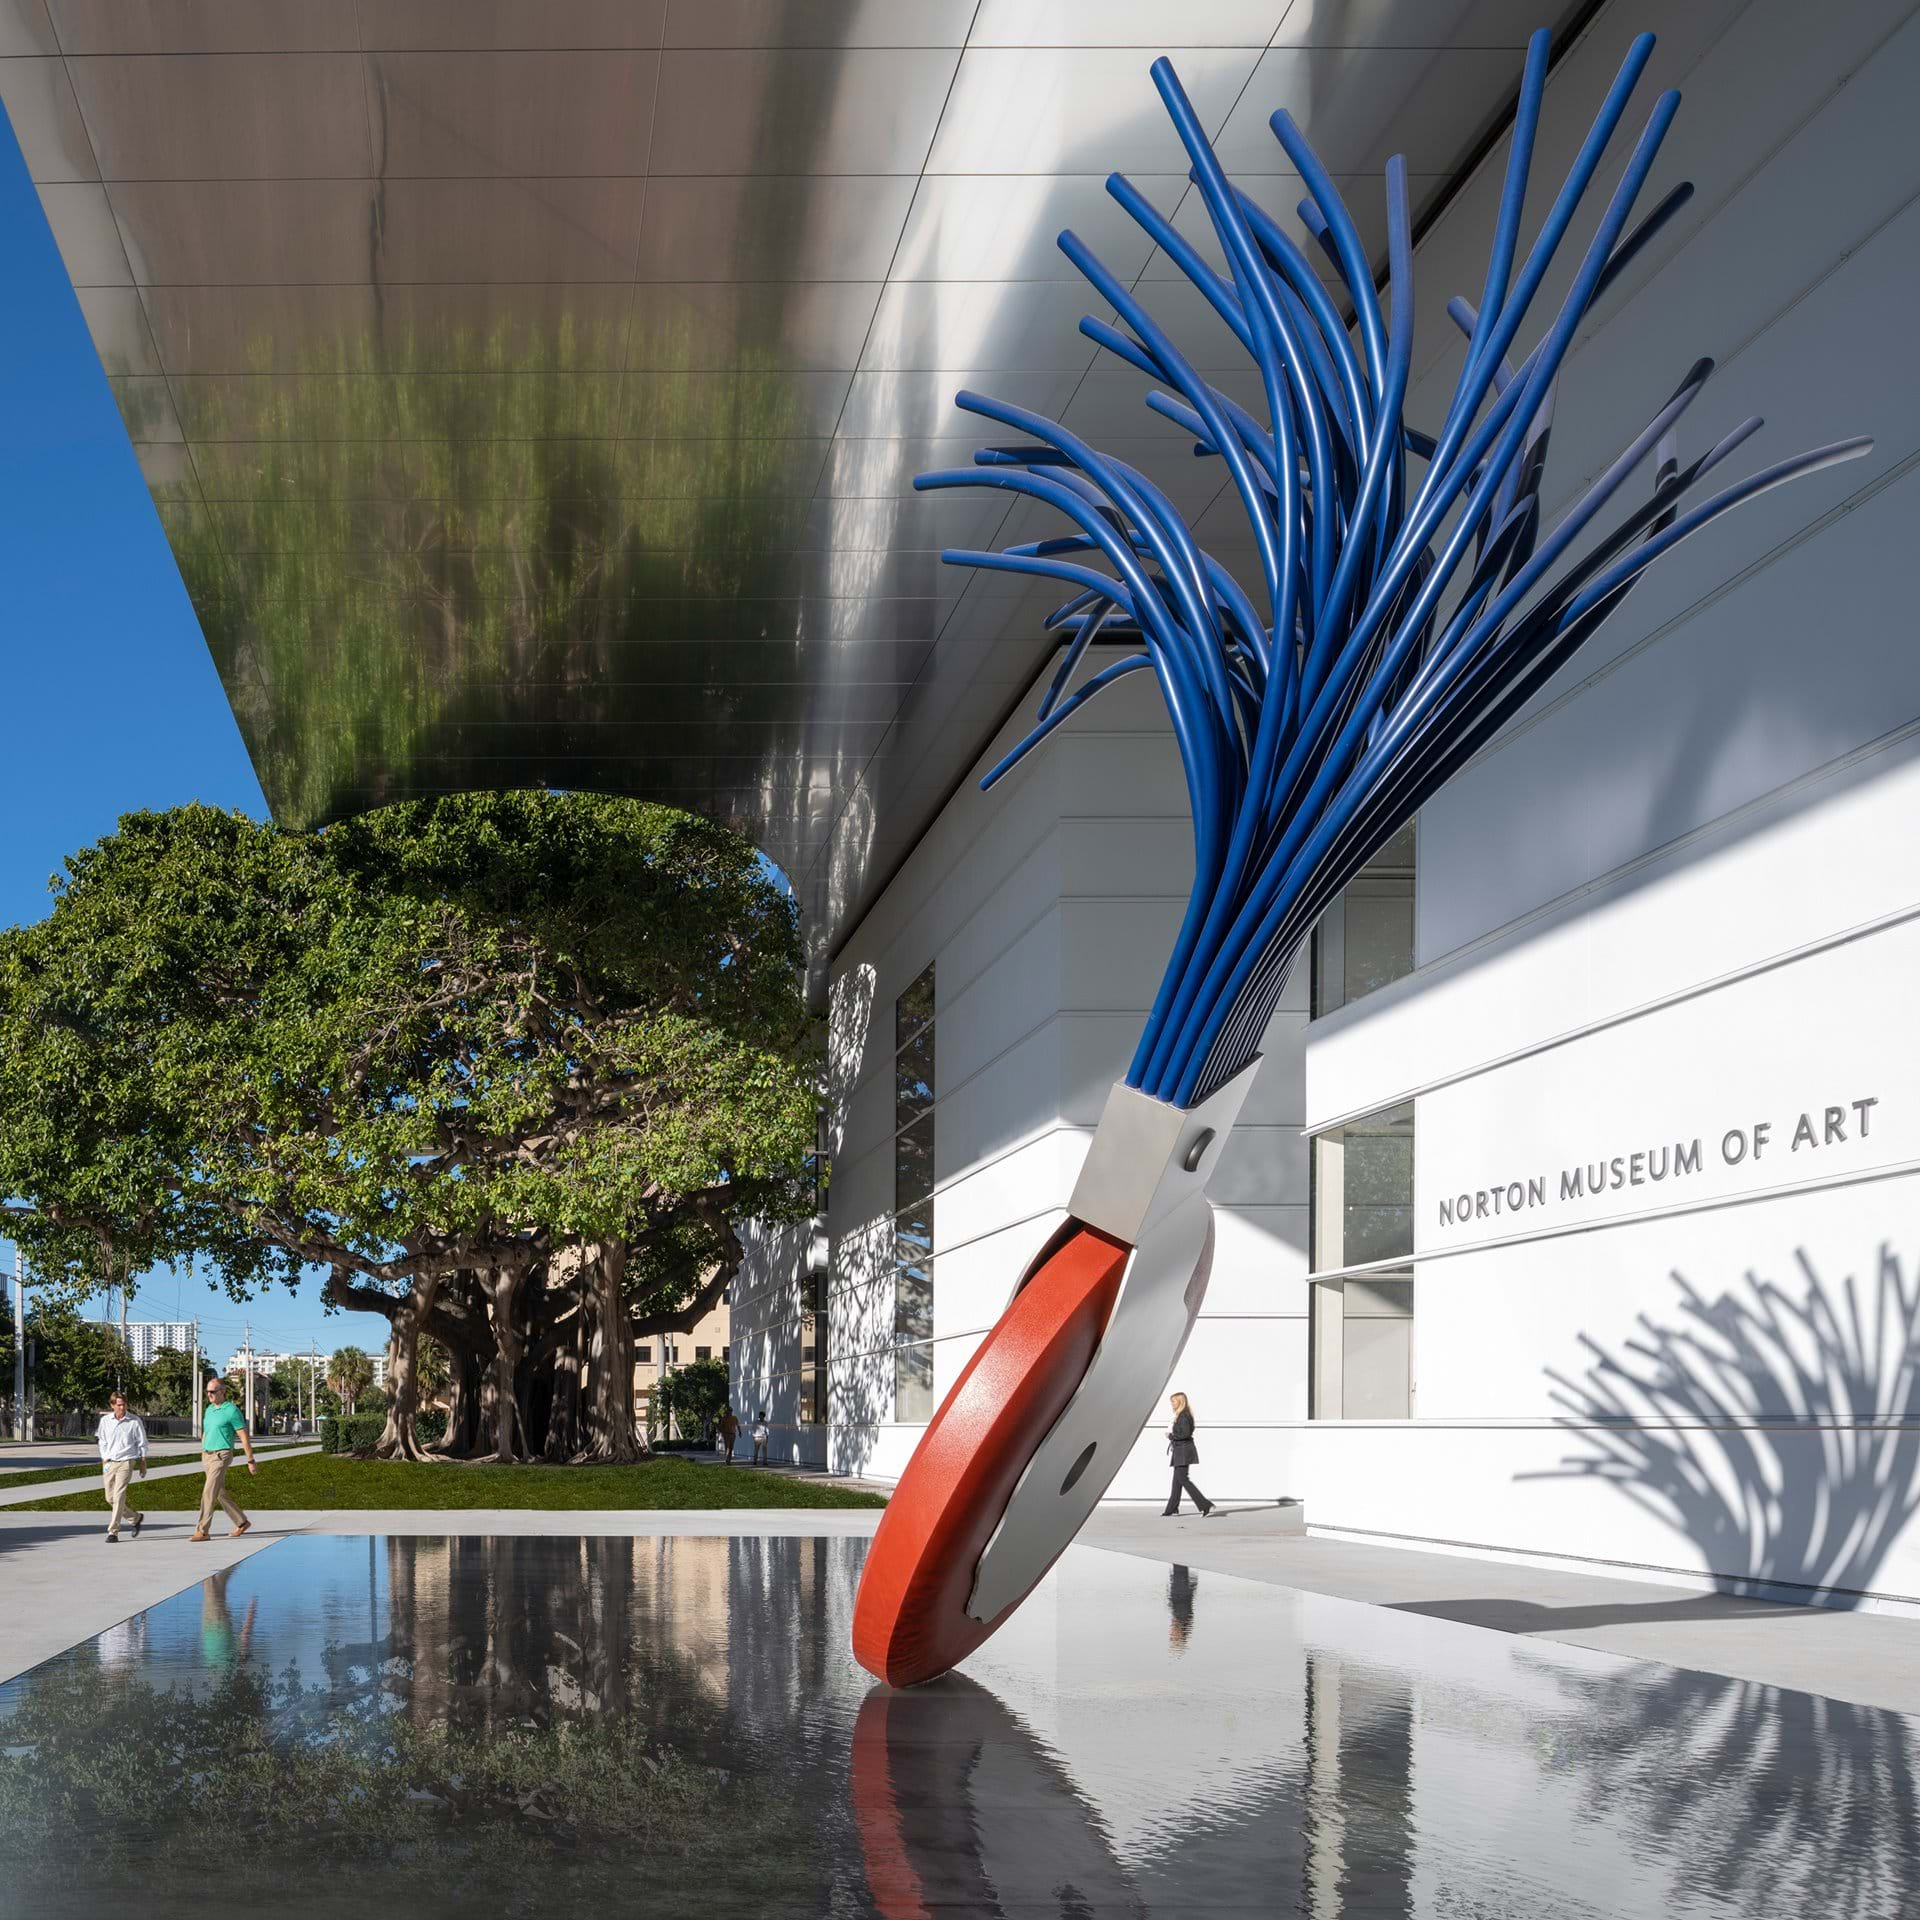 Typewriter Eraser, Scale X (1999) by Claes Oldenburg and Coosje van Bruggen (foreground) and the banyan tree in front of the Norton Museum of Art. Photo: Nigel Young.